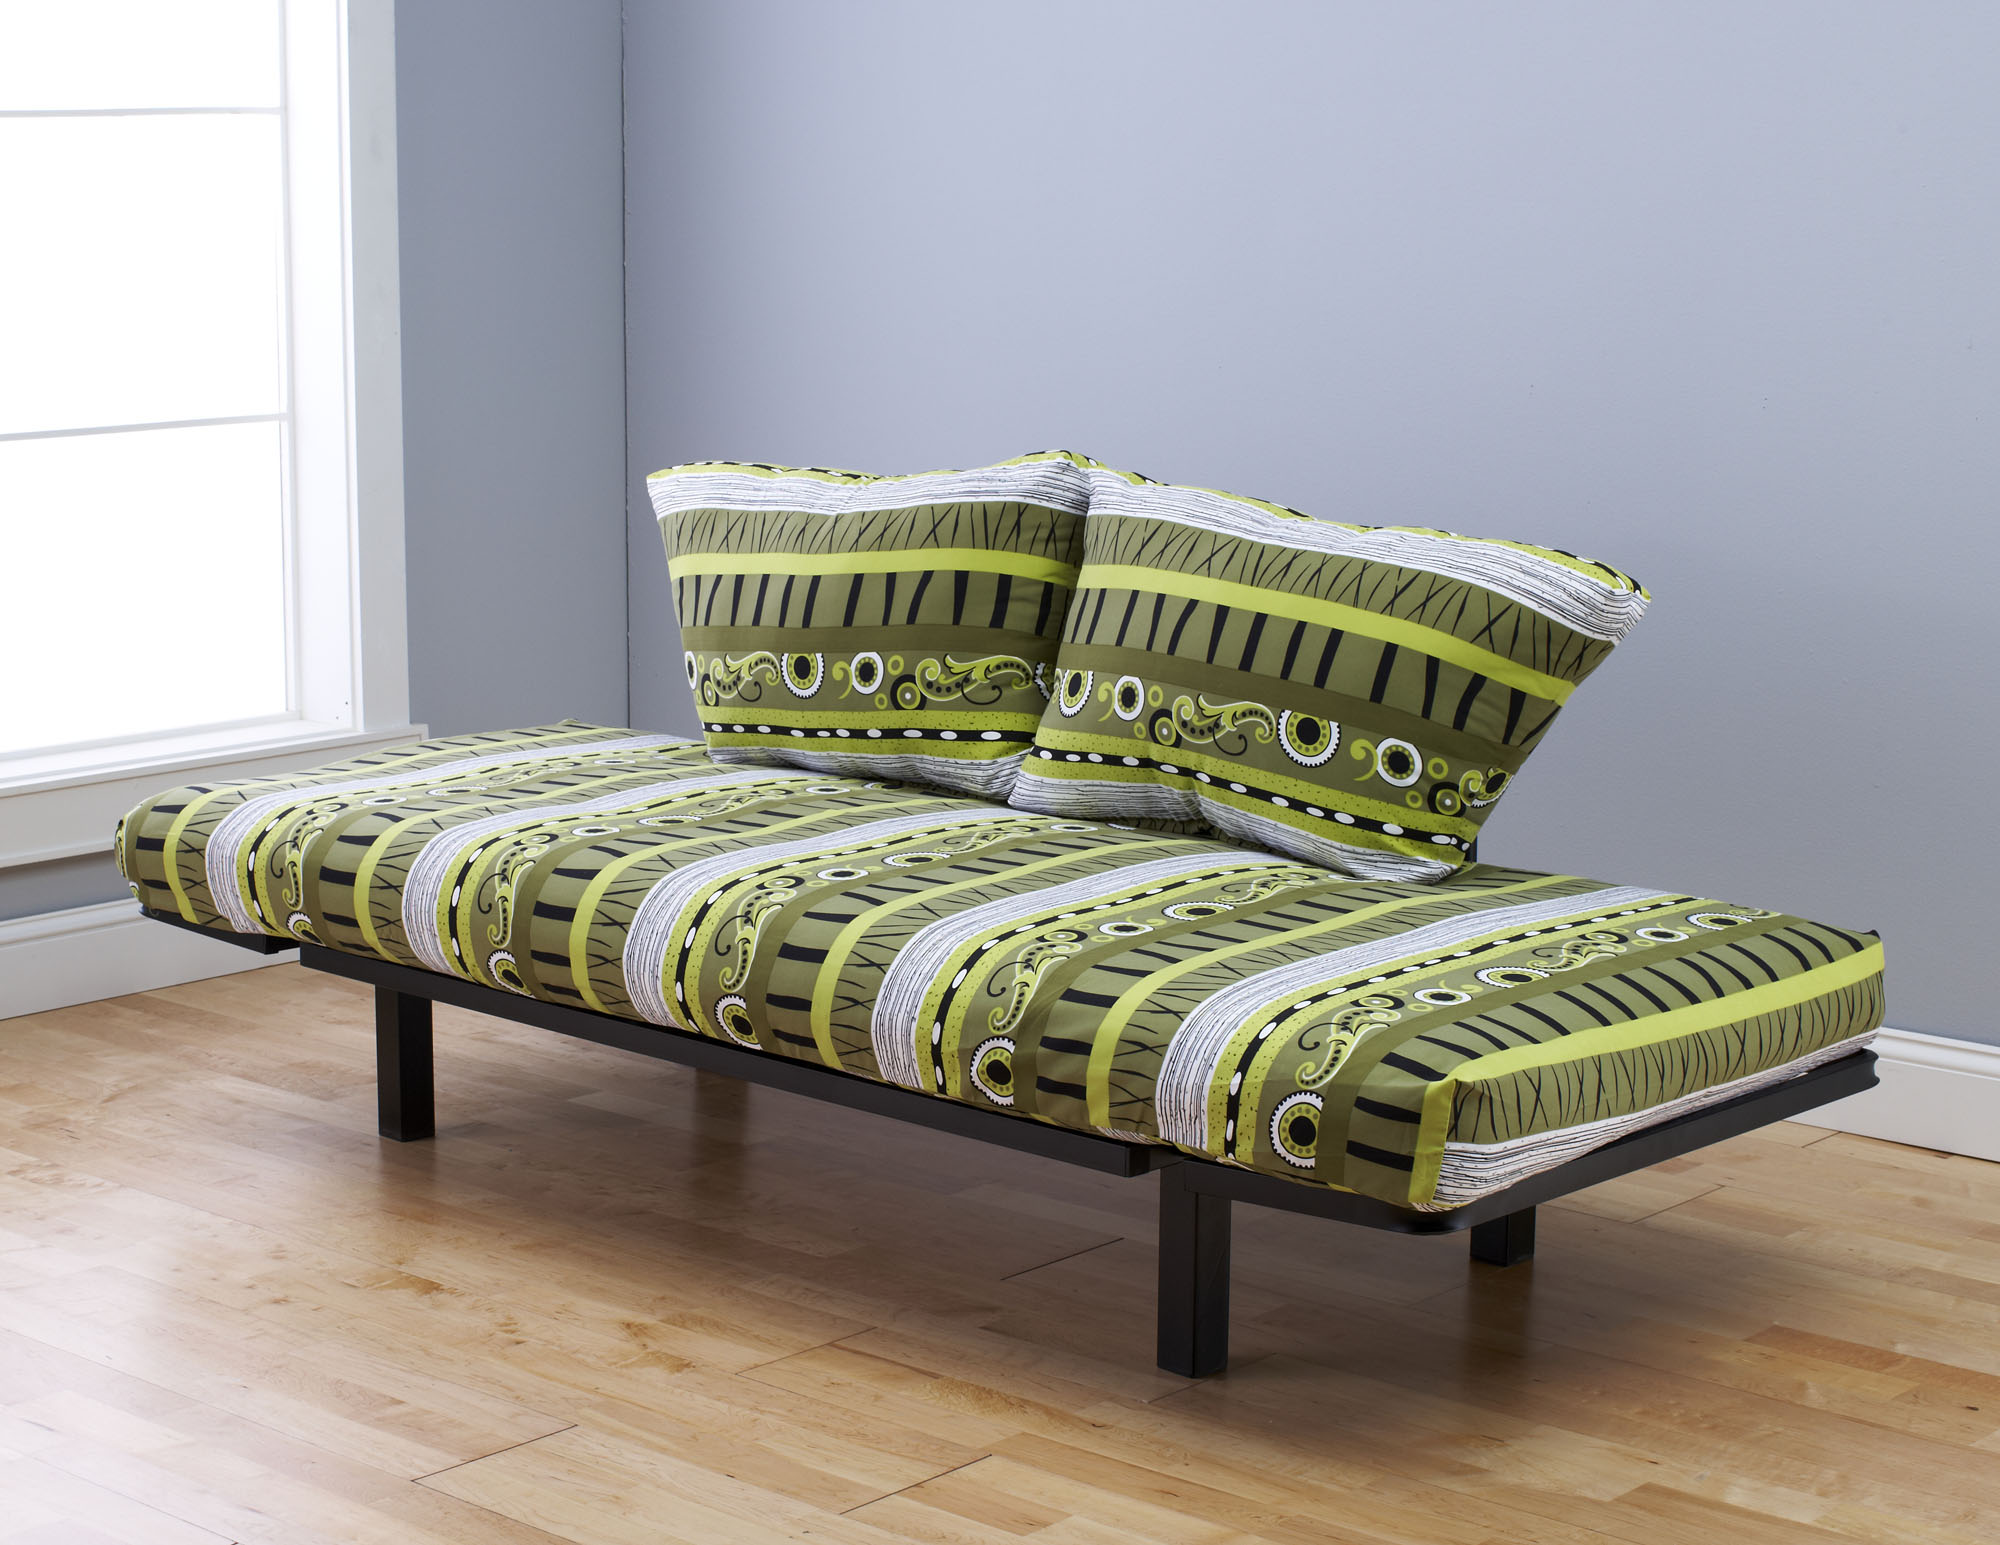 Ely Futon Daybed Lounger With Mattress Radiant Flux By Kodiak